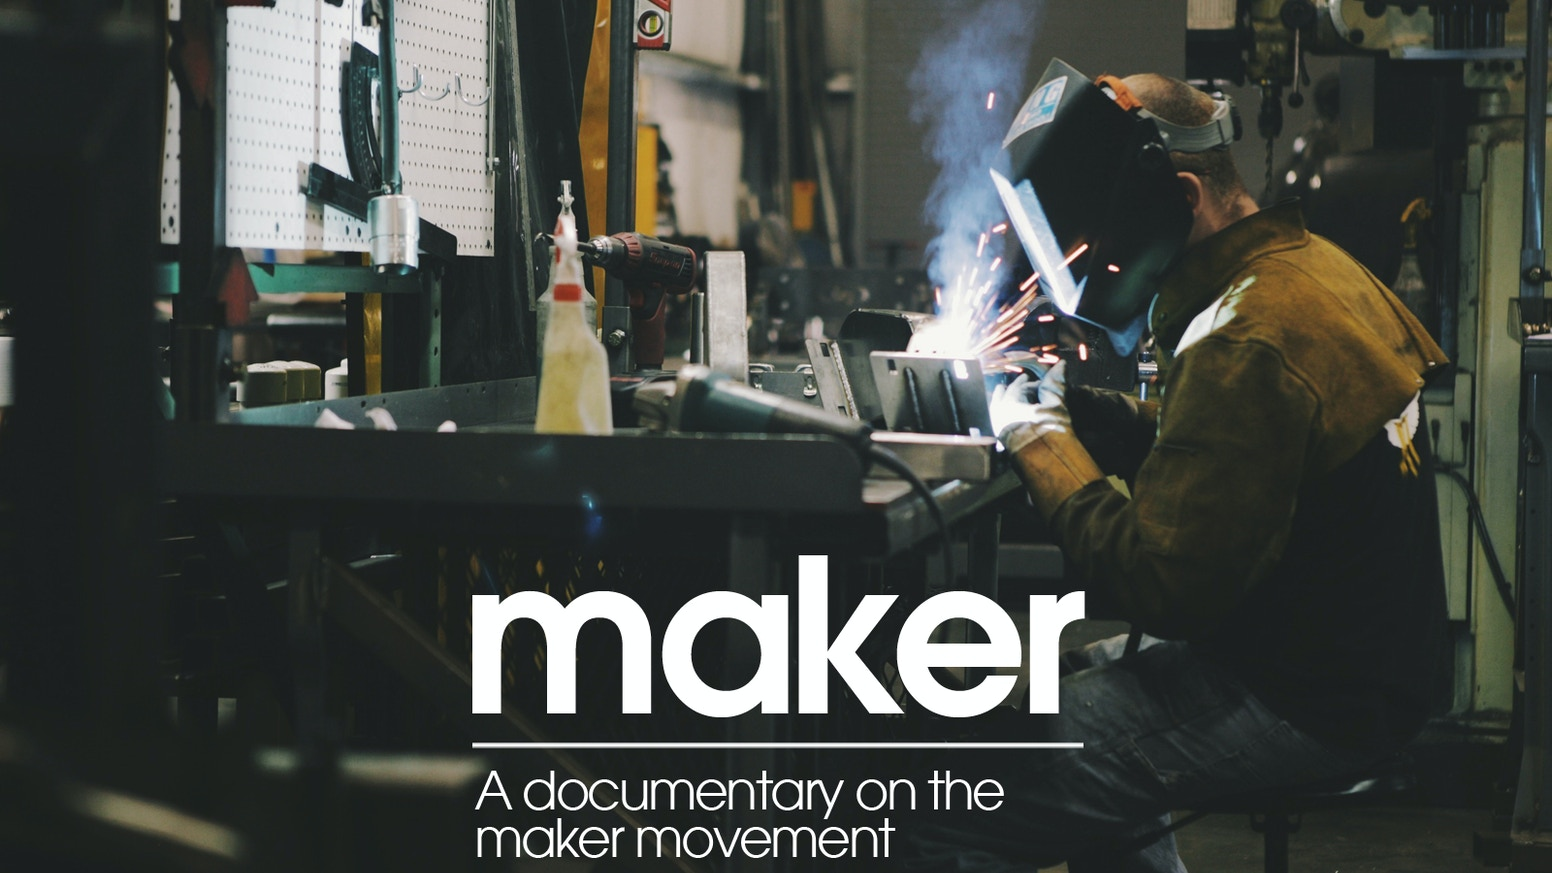 """Maker"" is a feature-length documentary on the Maker Movement and its impact on society, culture and economy in the U.S."